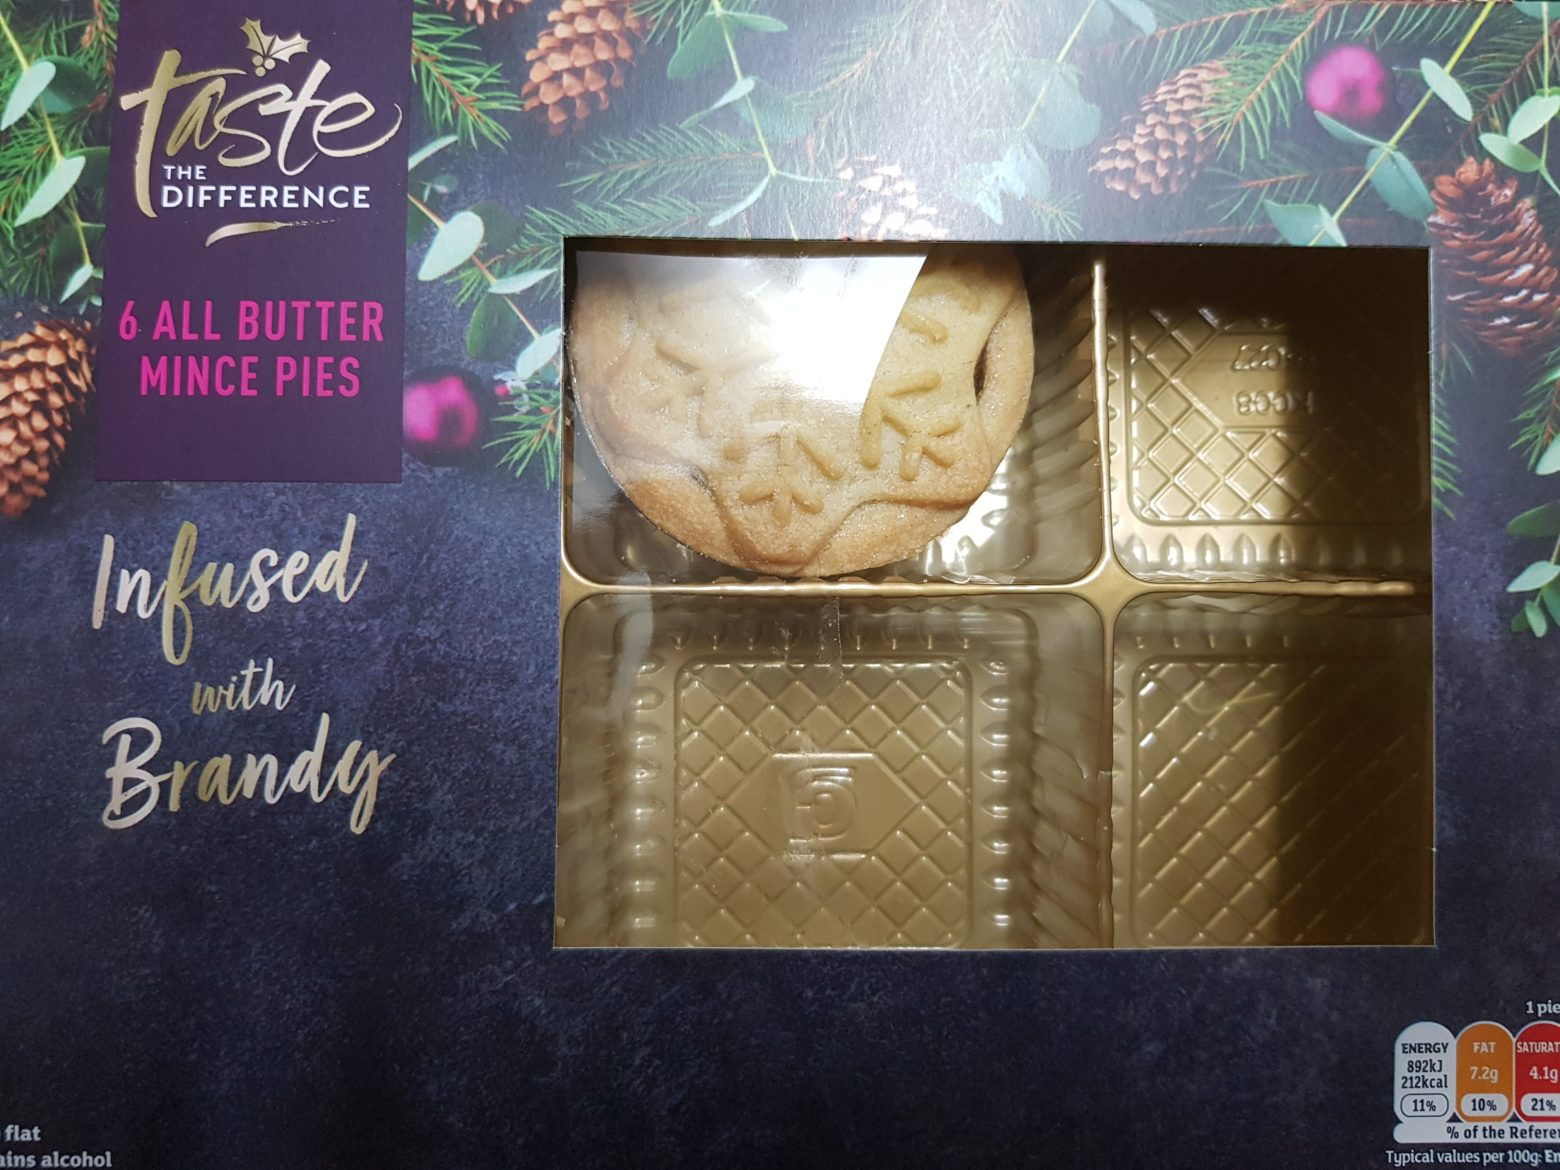 Sainsbury's Taste The Difference All Butter Mince Pie Review 2019